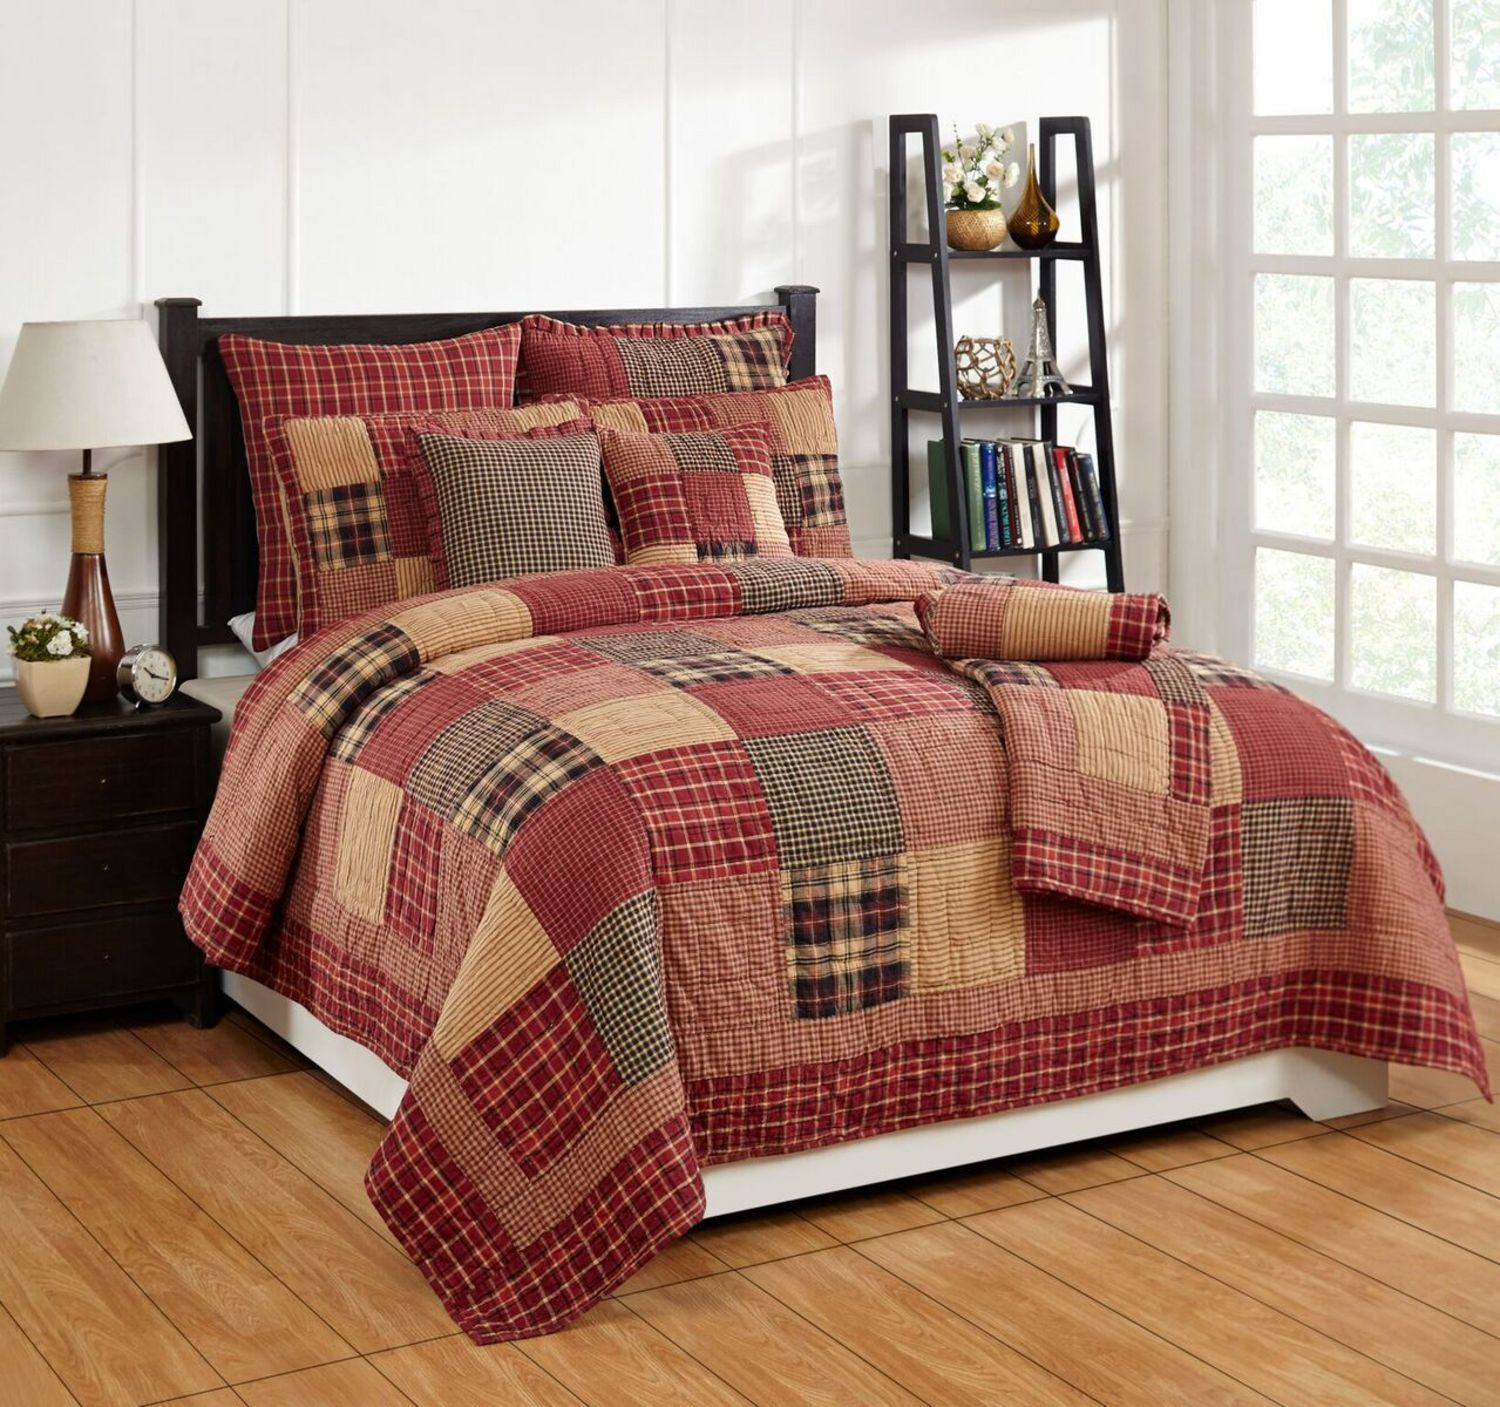 Rutherford By Olivias Heartland Quilts Beddingsuperstore Com